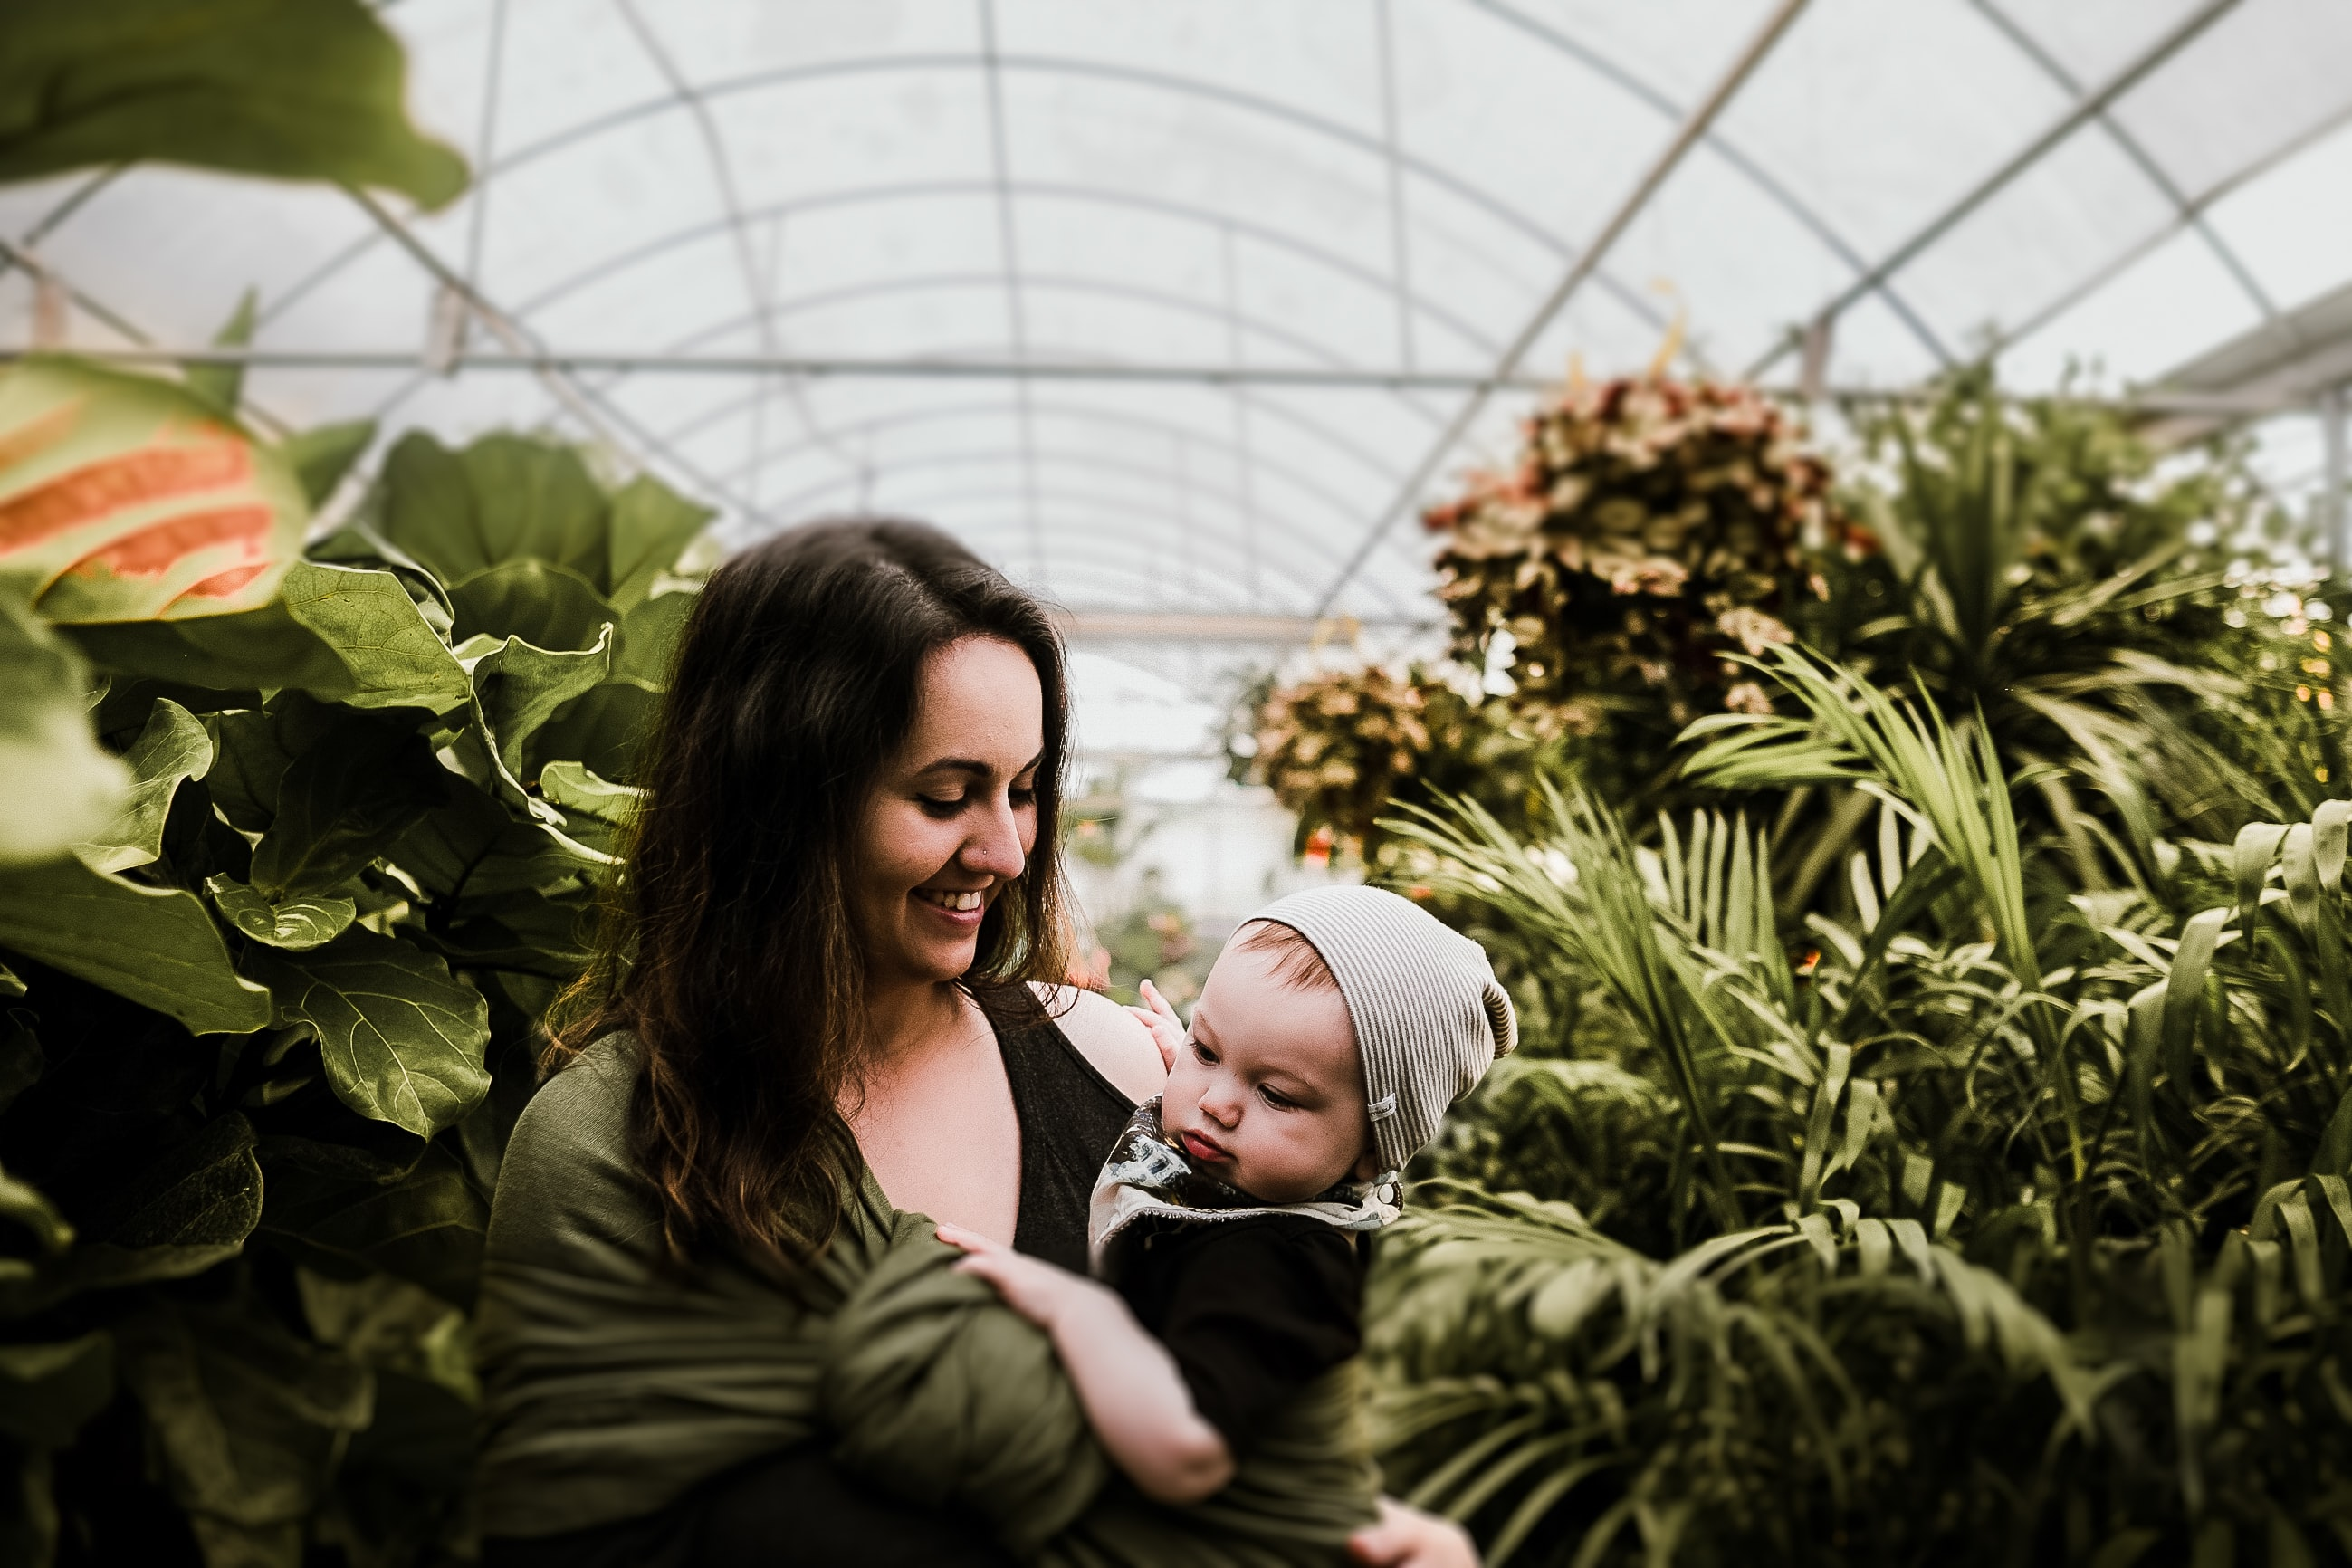 A mother holding her child in a greenhouse